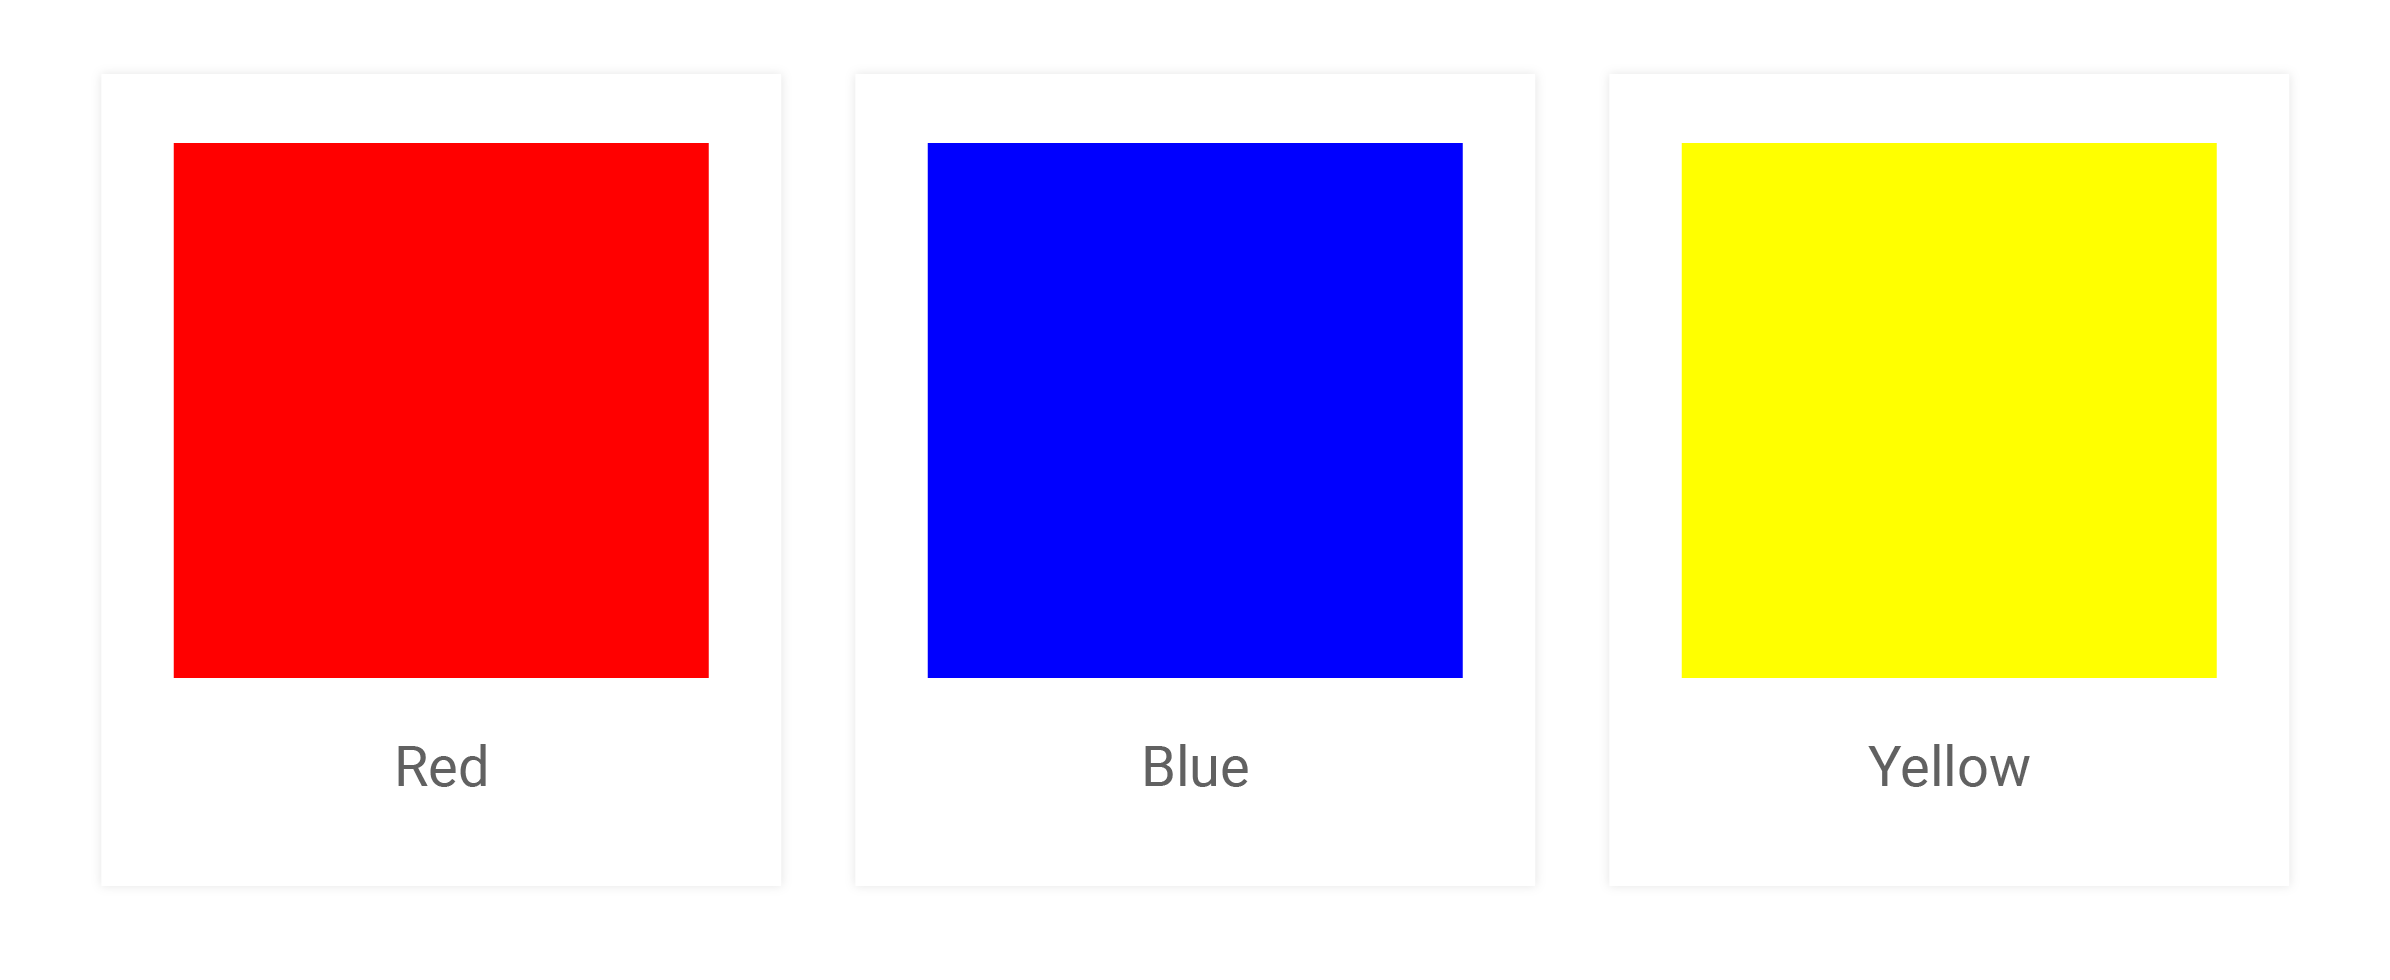 Red, Blue and Yellow color swatches